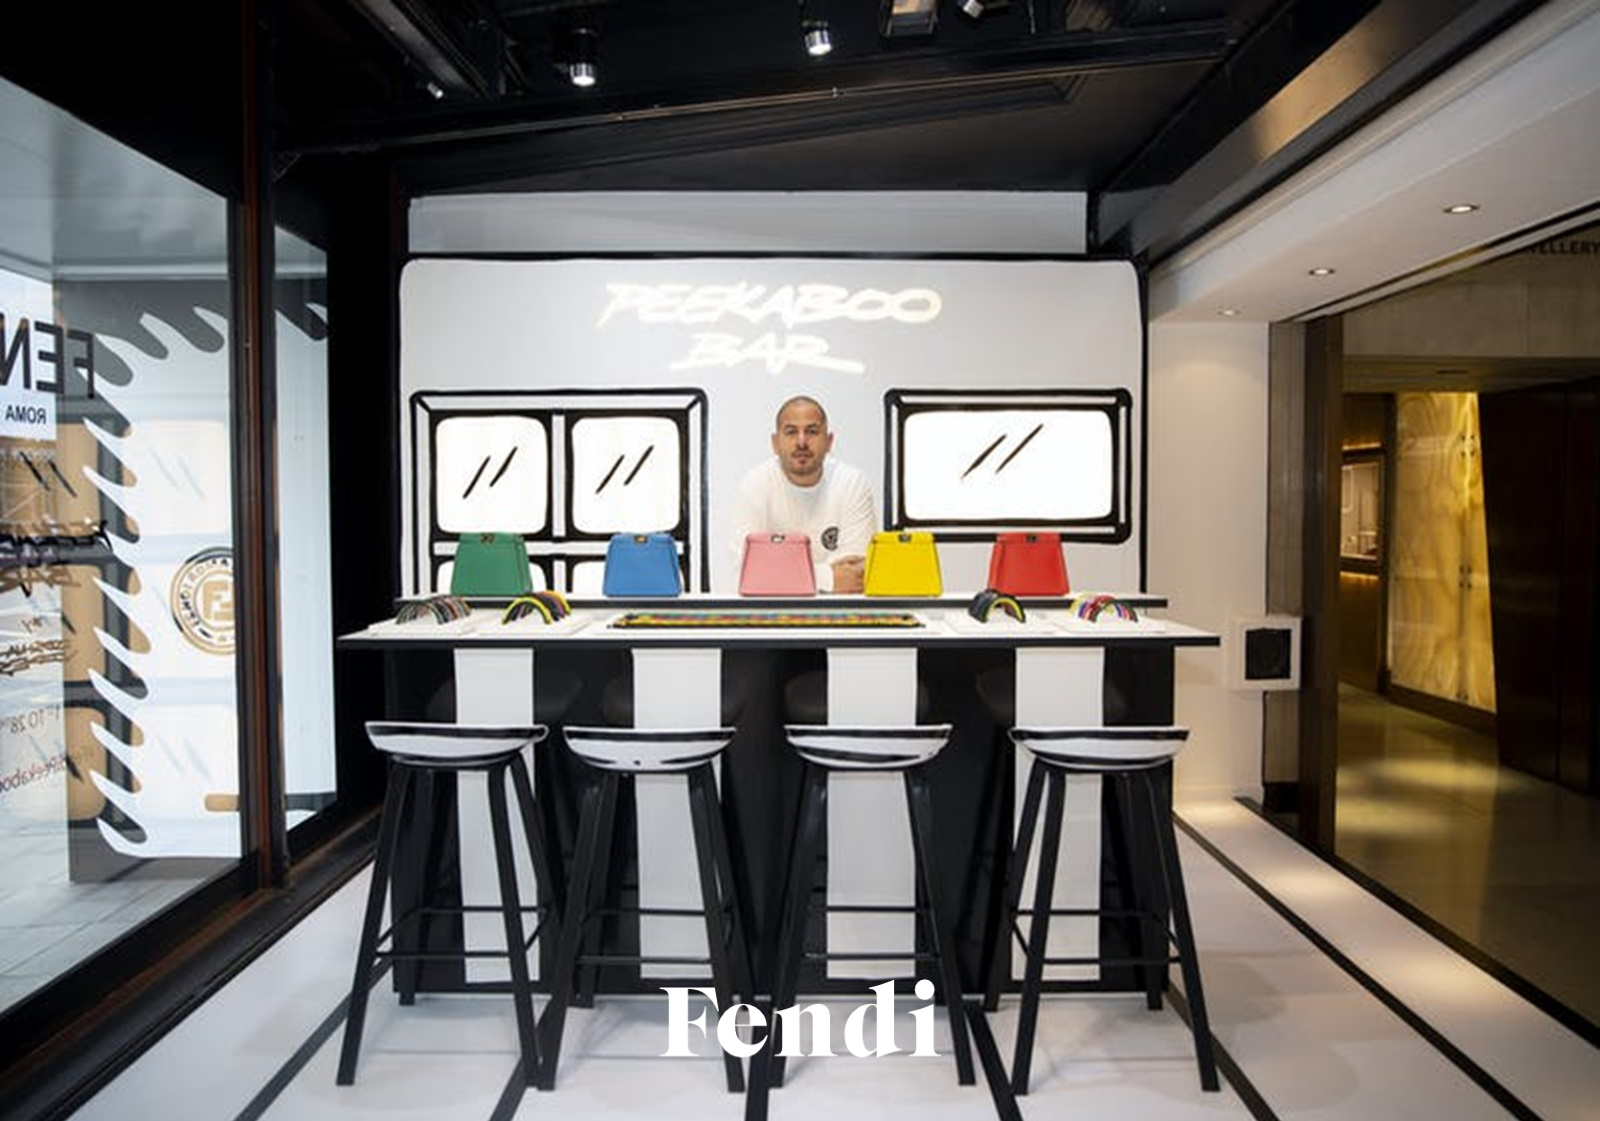 fendi-pop-up-retail-design